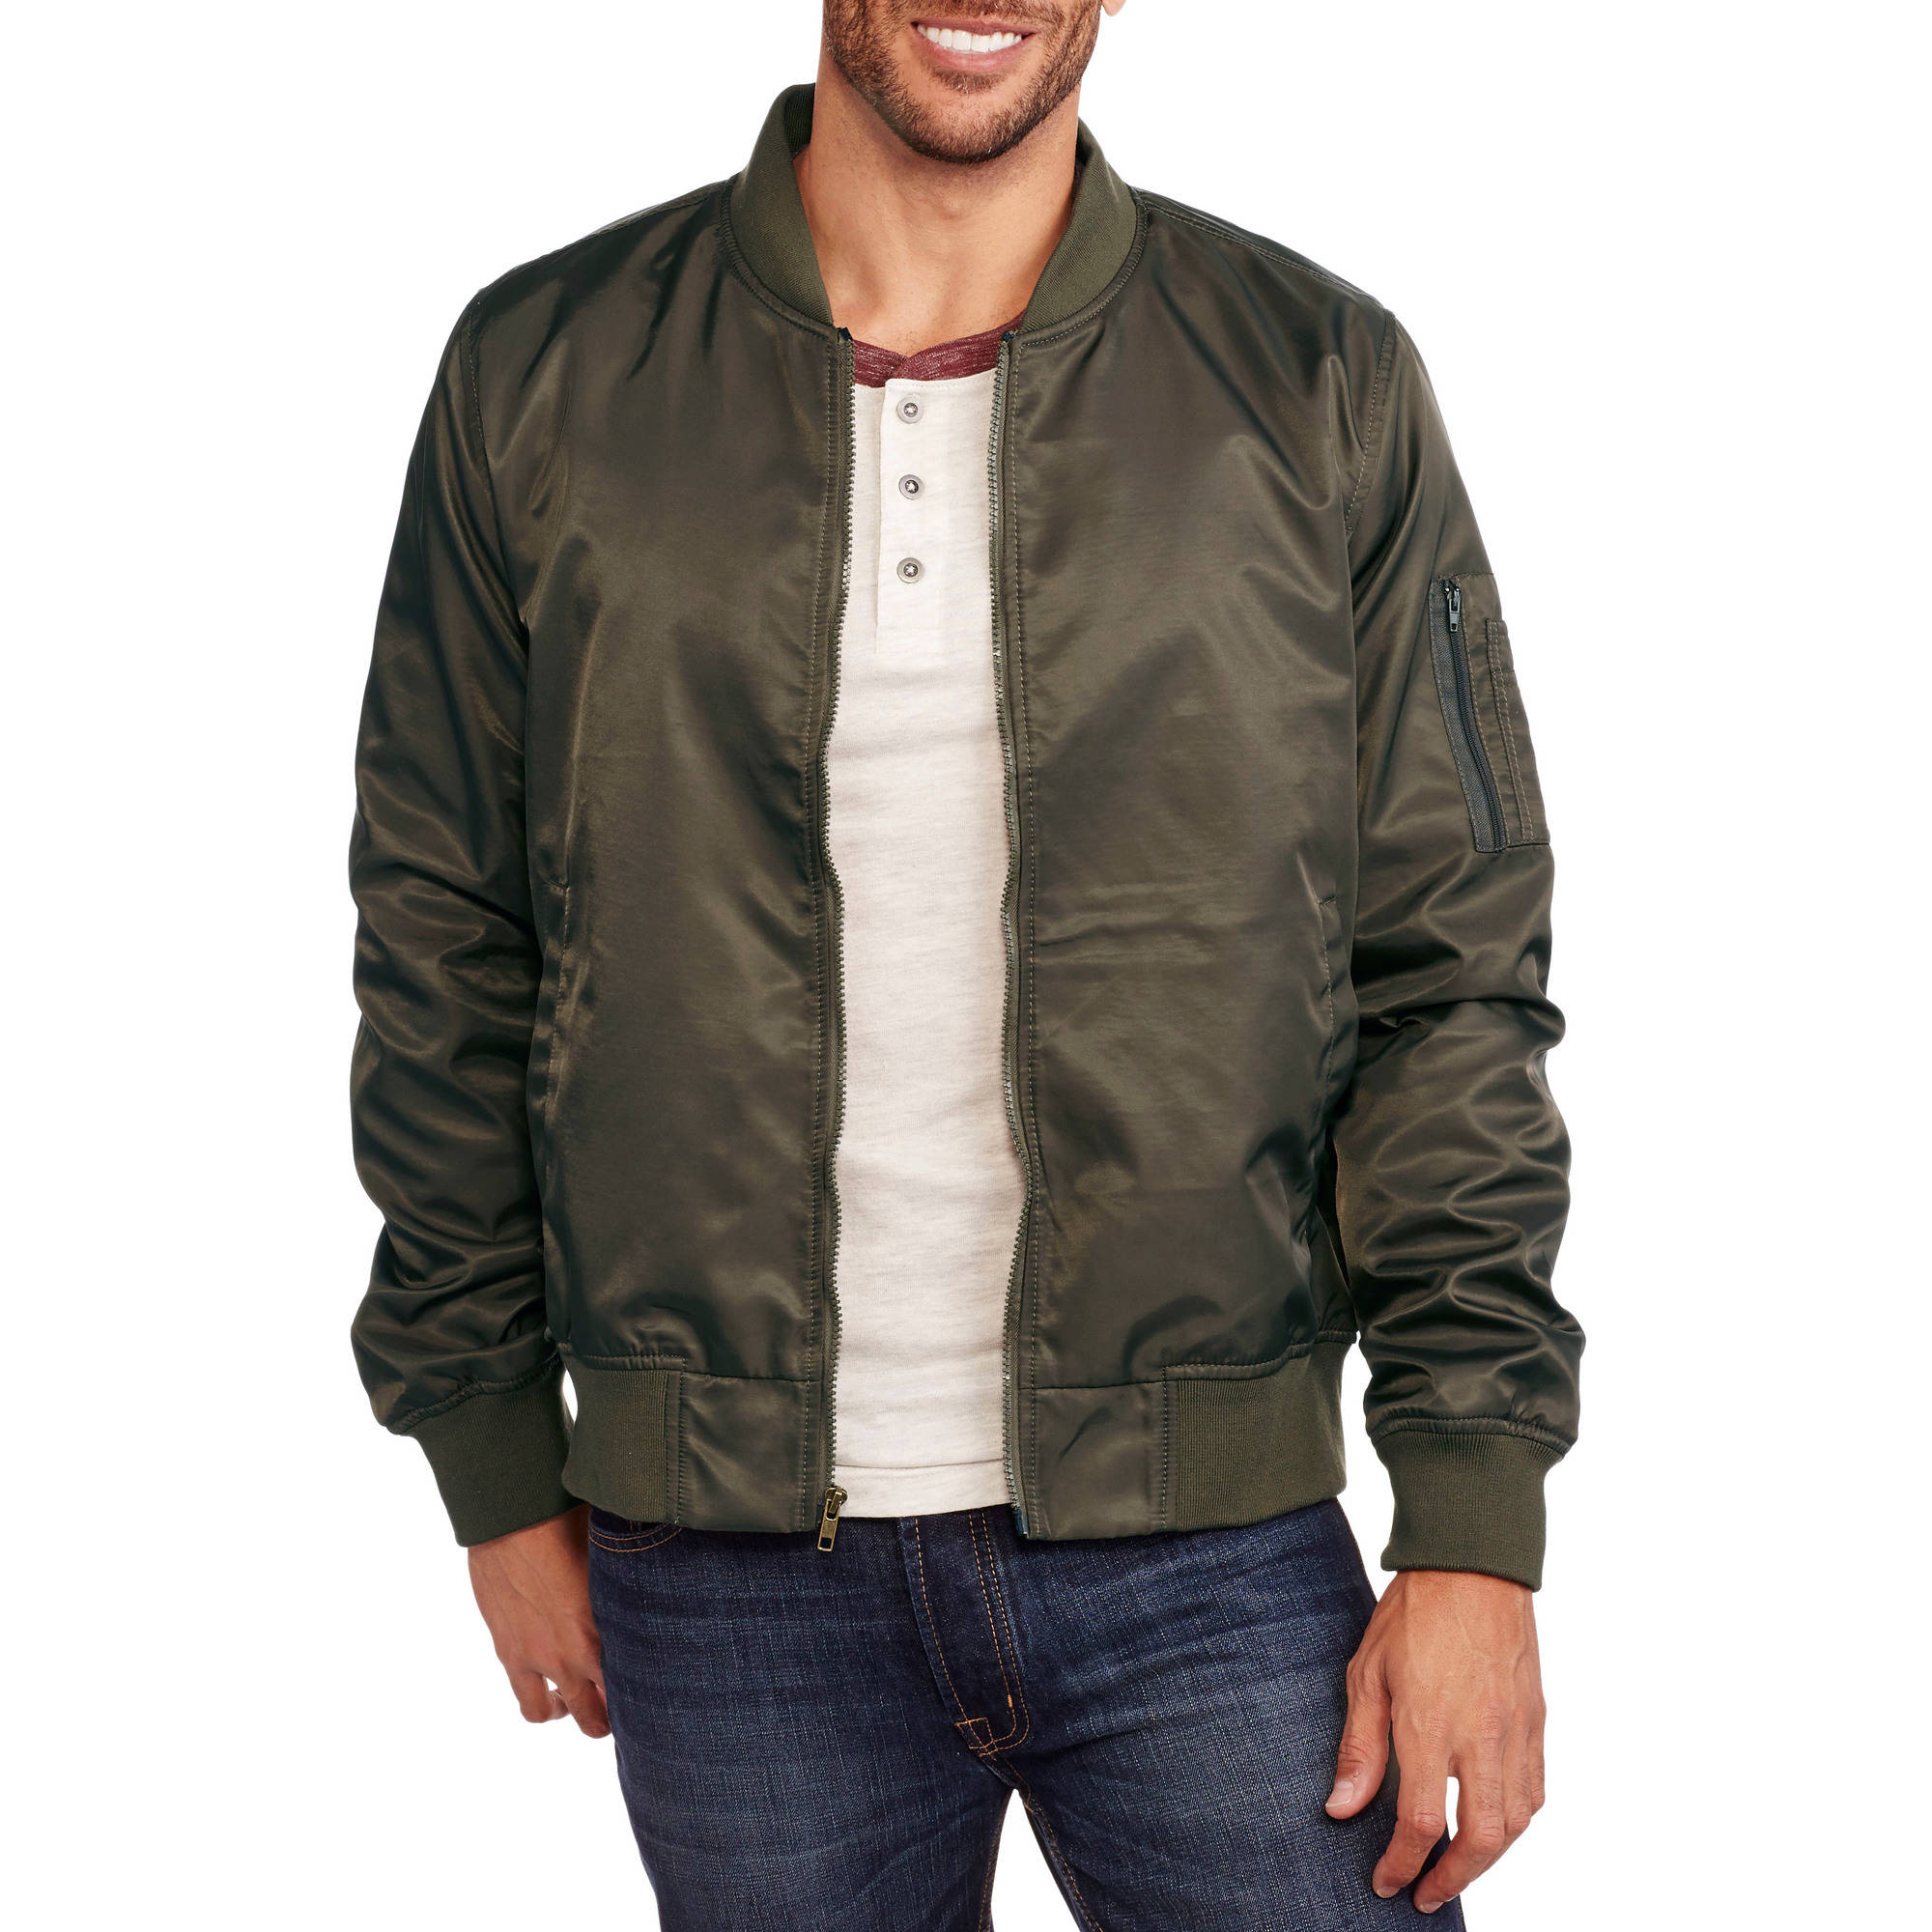 Big Men's Nylon Bomber Jacket